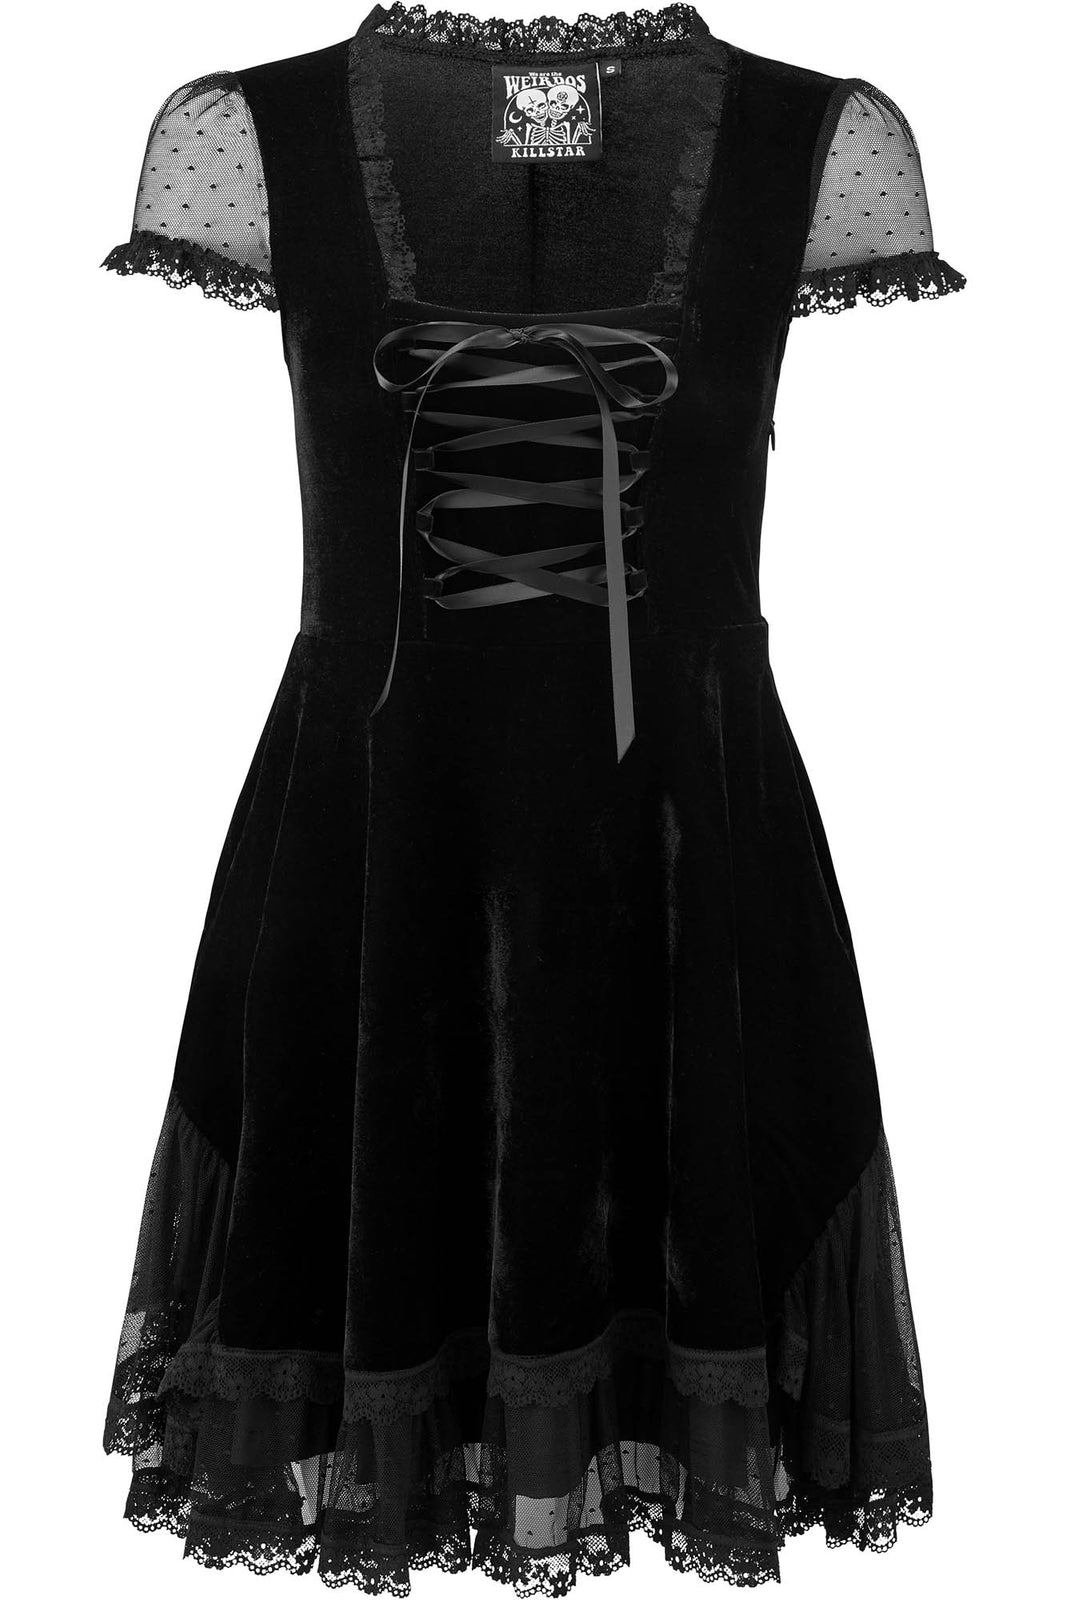 Delora Velvet Dress